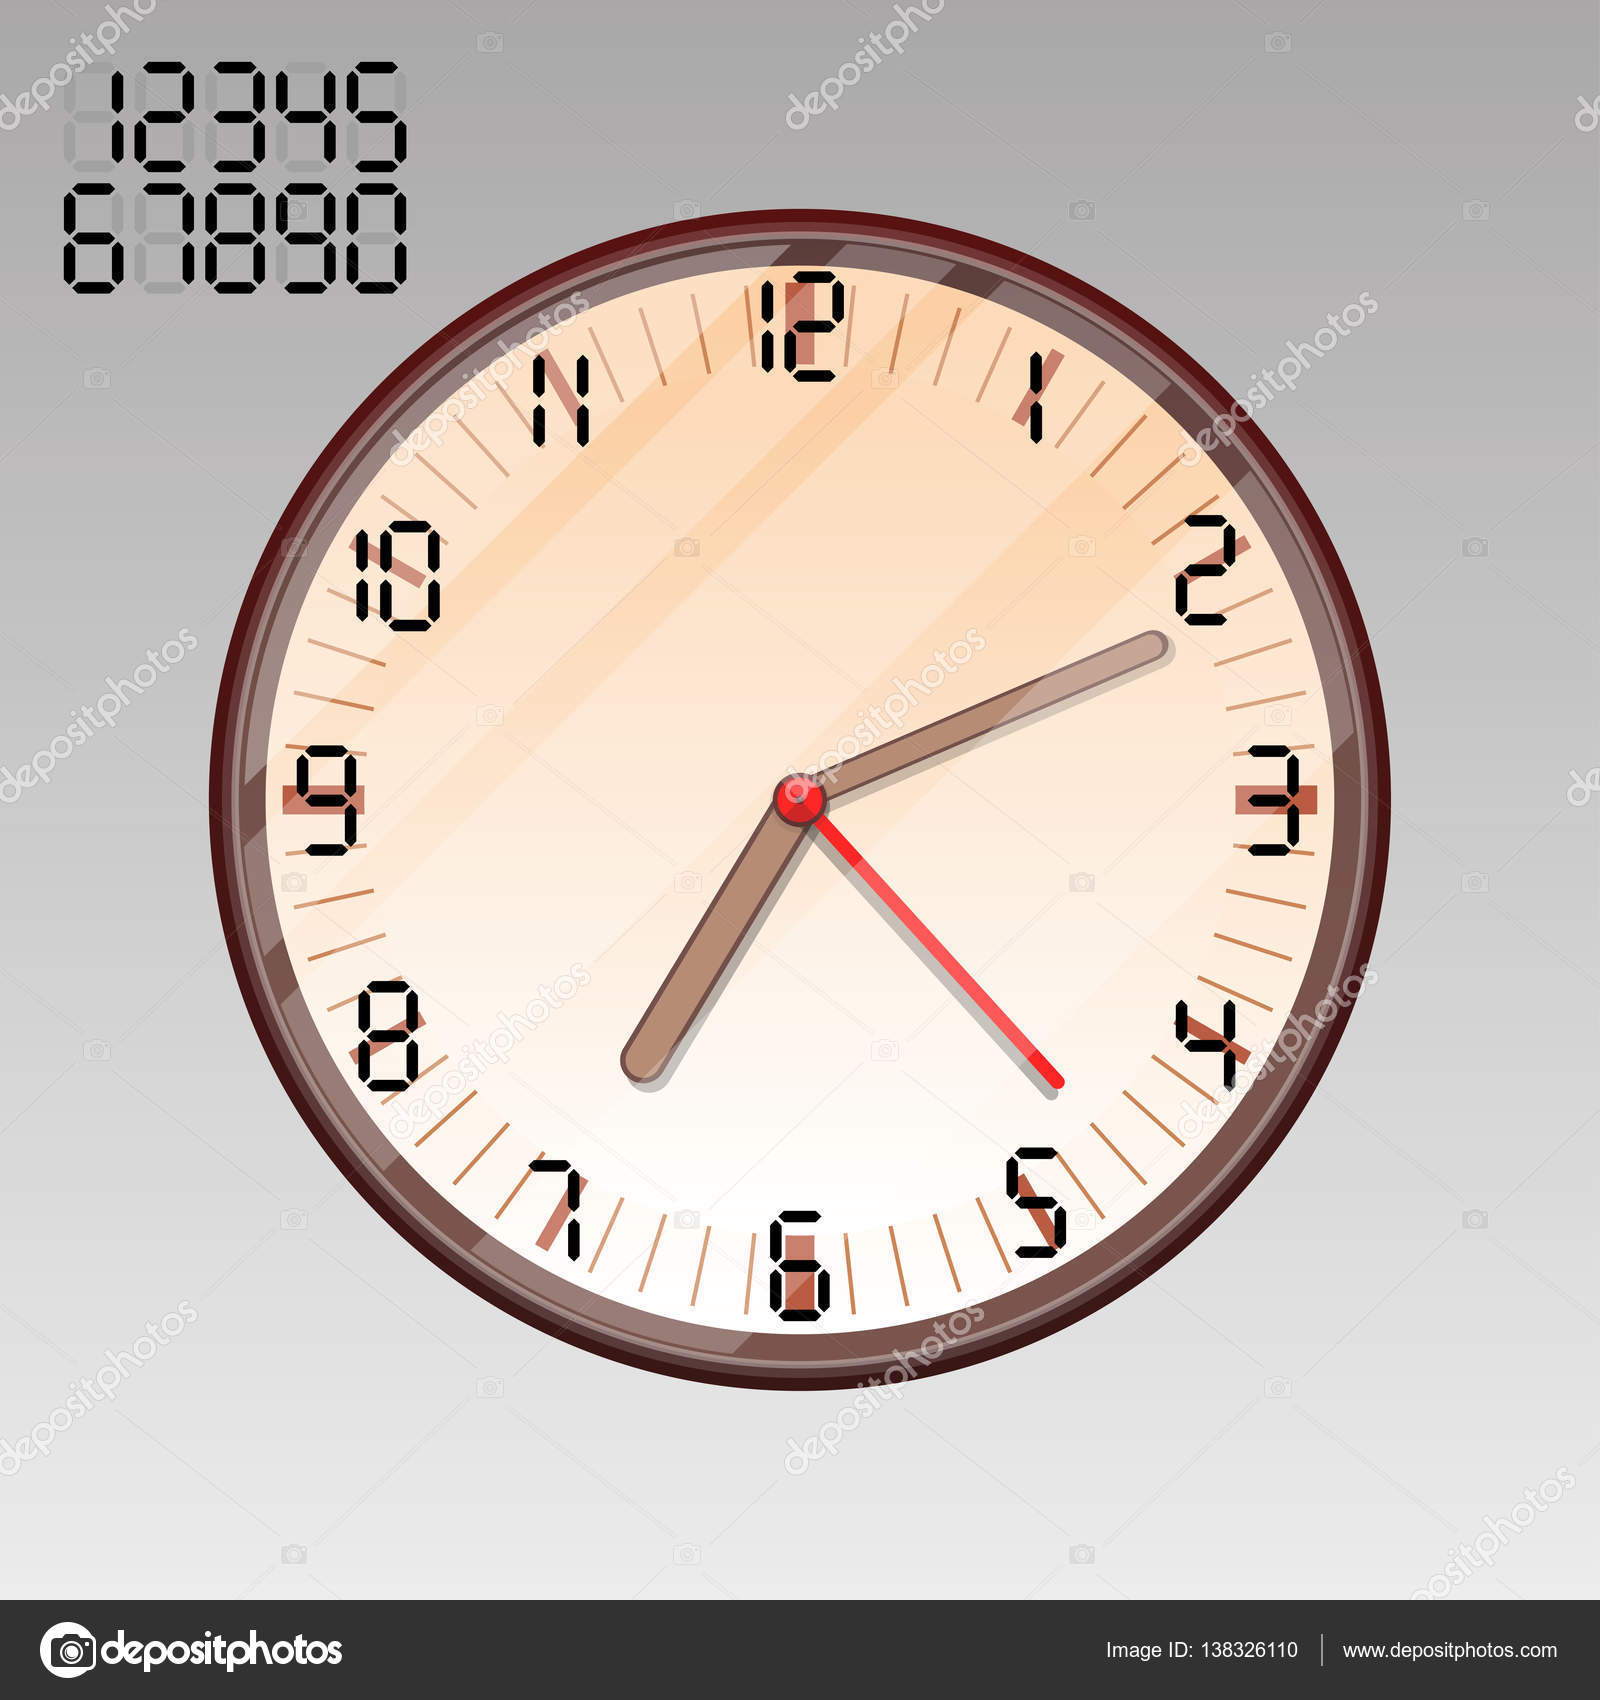 The Clock On The Wall Round Dial The Numbers From 1 To 12 The